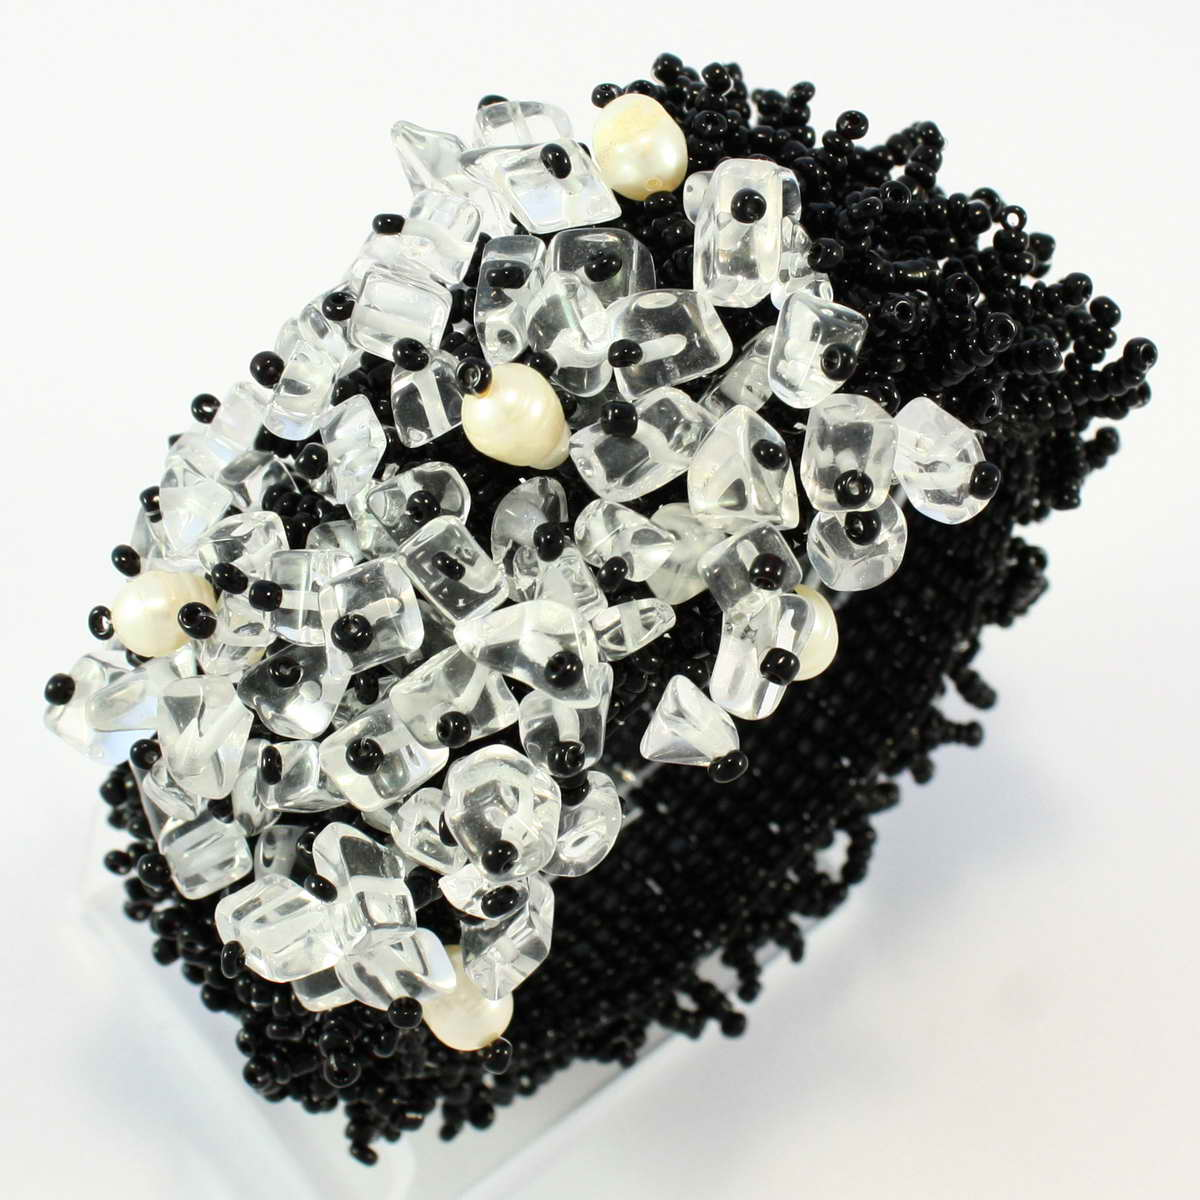 edles designer armband echte perlen keramic beads handarbeit b071 ebay. Black Bedroom Furniture Sets. Home Design Ideas